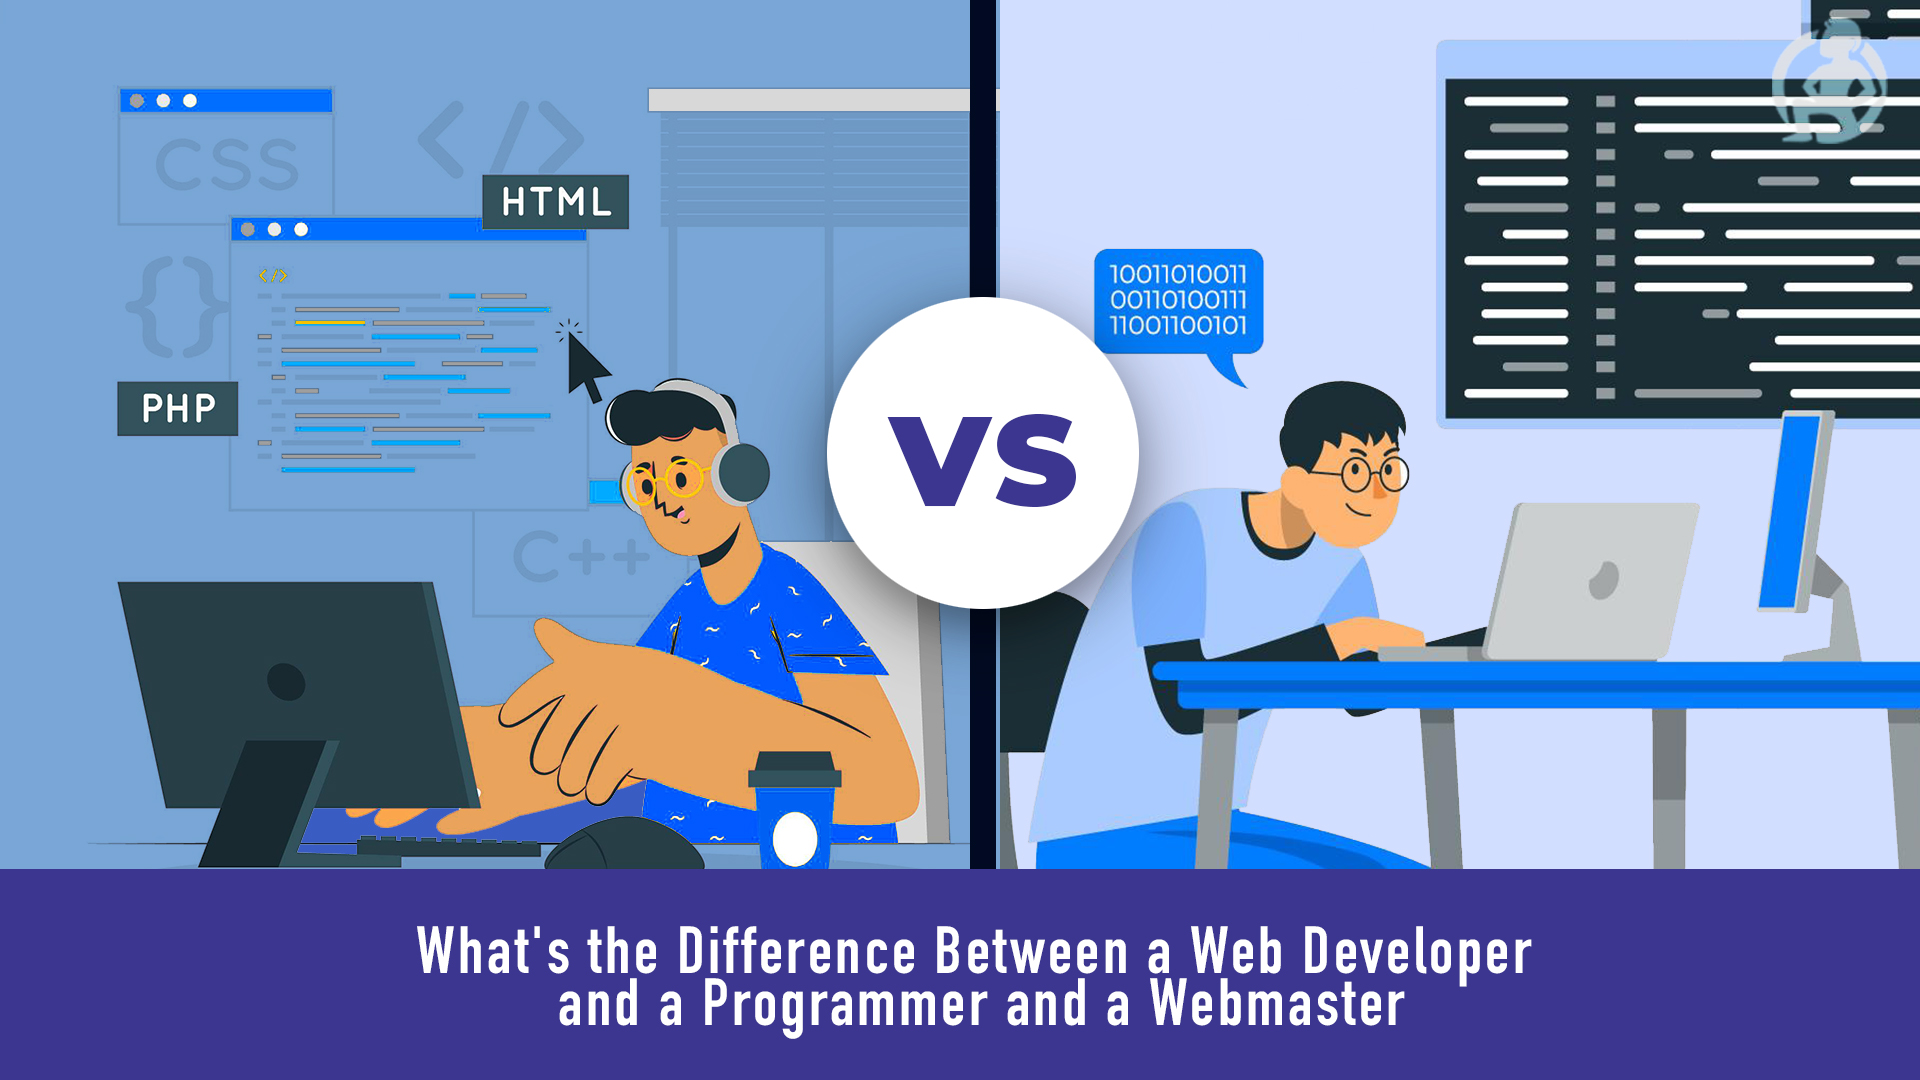 What's the Difference Between a Web Developer and a Programmer and a Webmaster